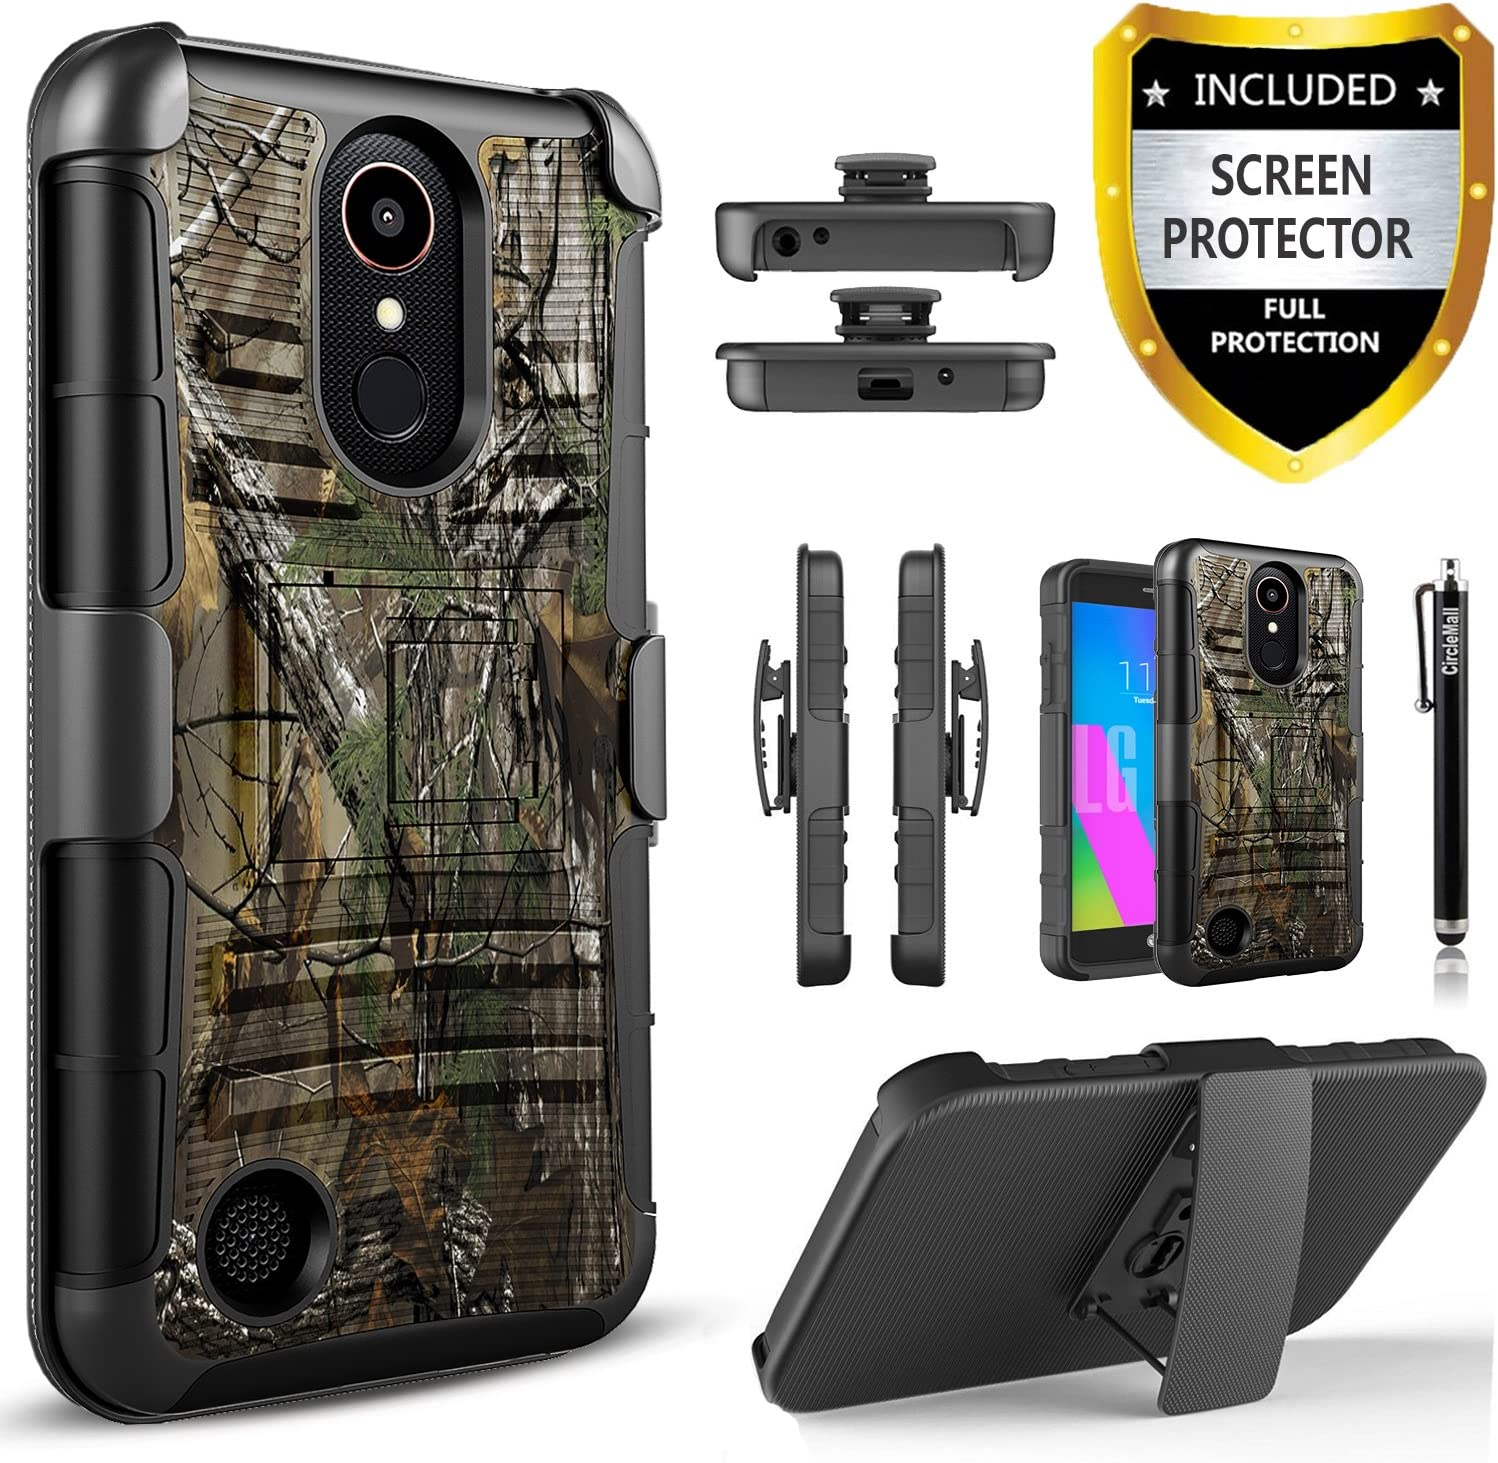 LG Aristo 2/Aristo 3/Aristo 2 Plus/Tribute Empire/Tribute Dynasty/Rebel 3/Rebel 4 LTE/Fortune 2/Phoenix 4/Risio 3/Zone 4 Phone Case,with [Premium Screen Protector] Built in Kickstand Holster-Camo